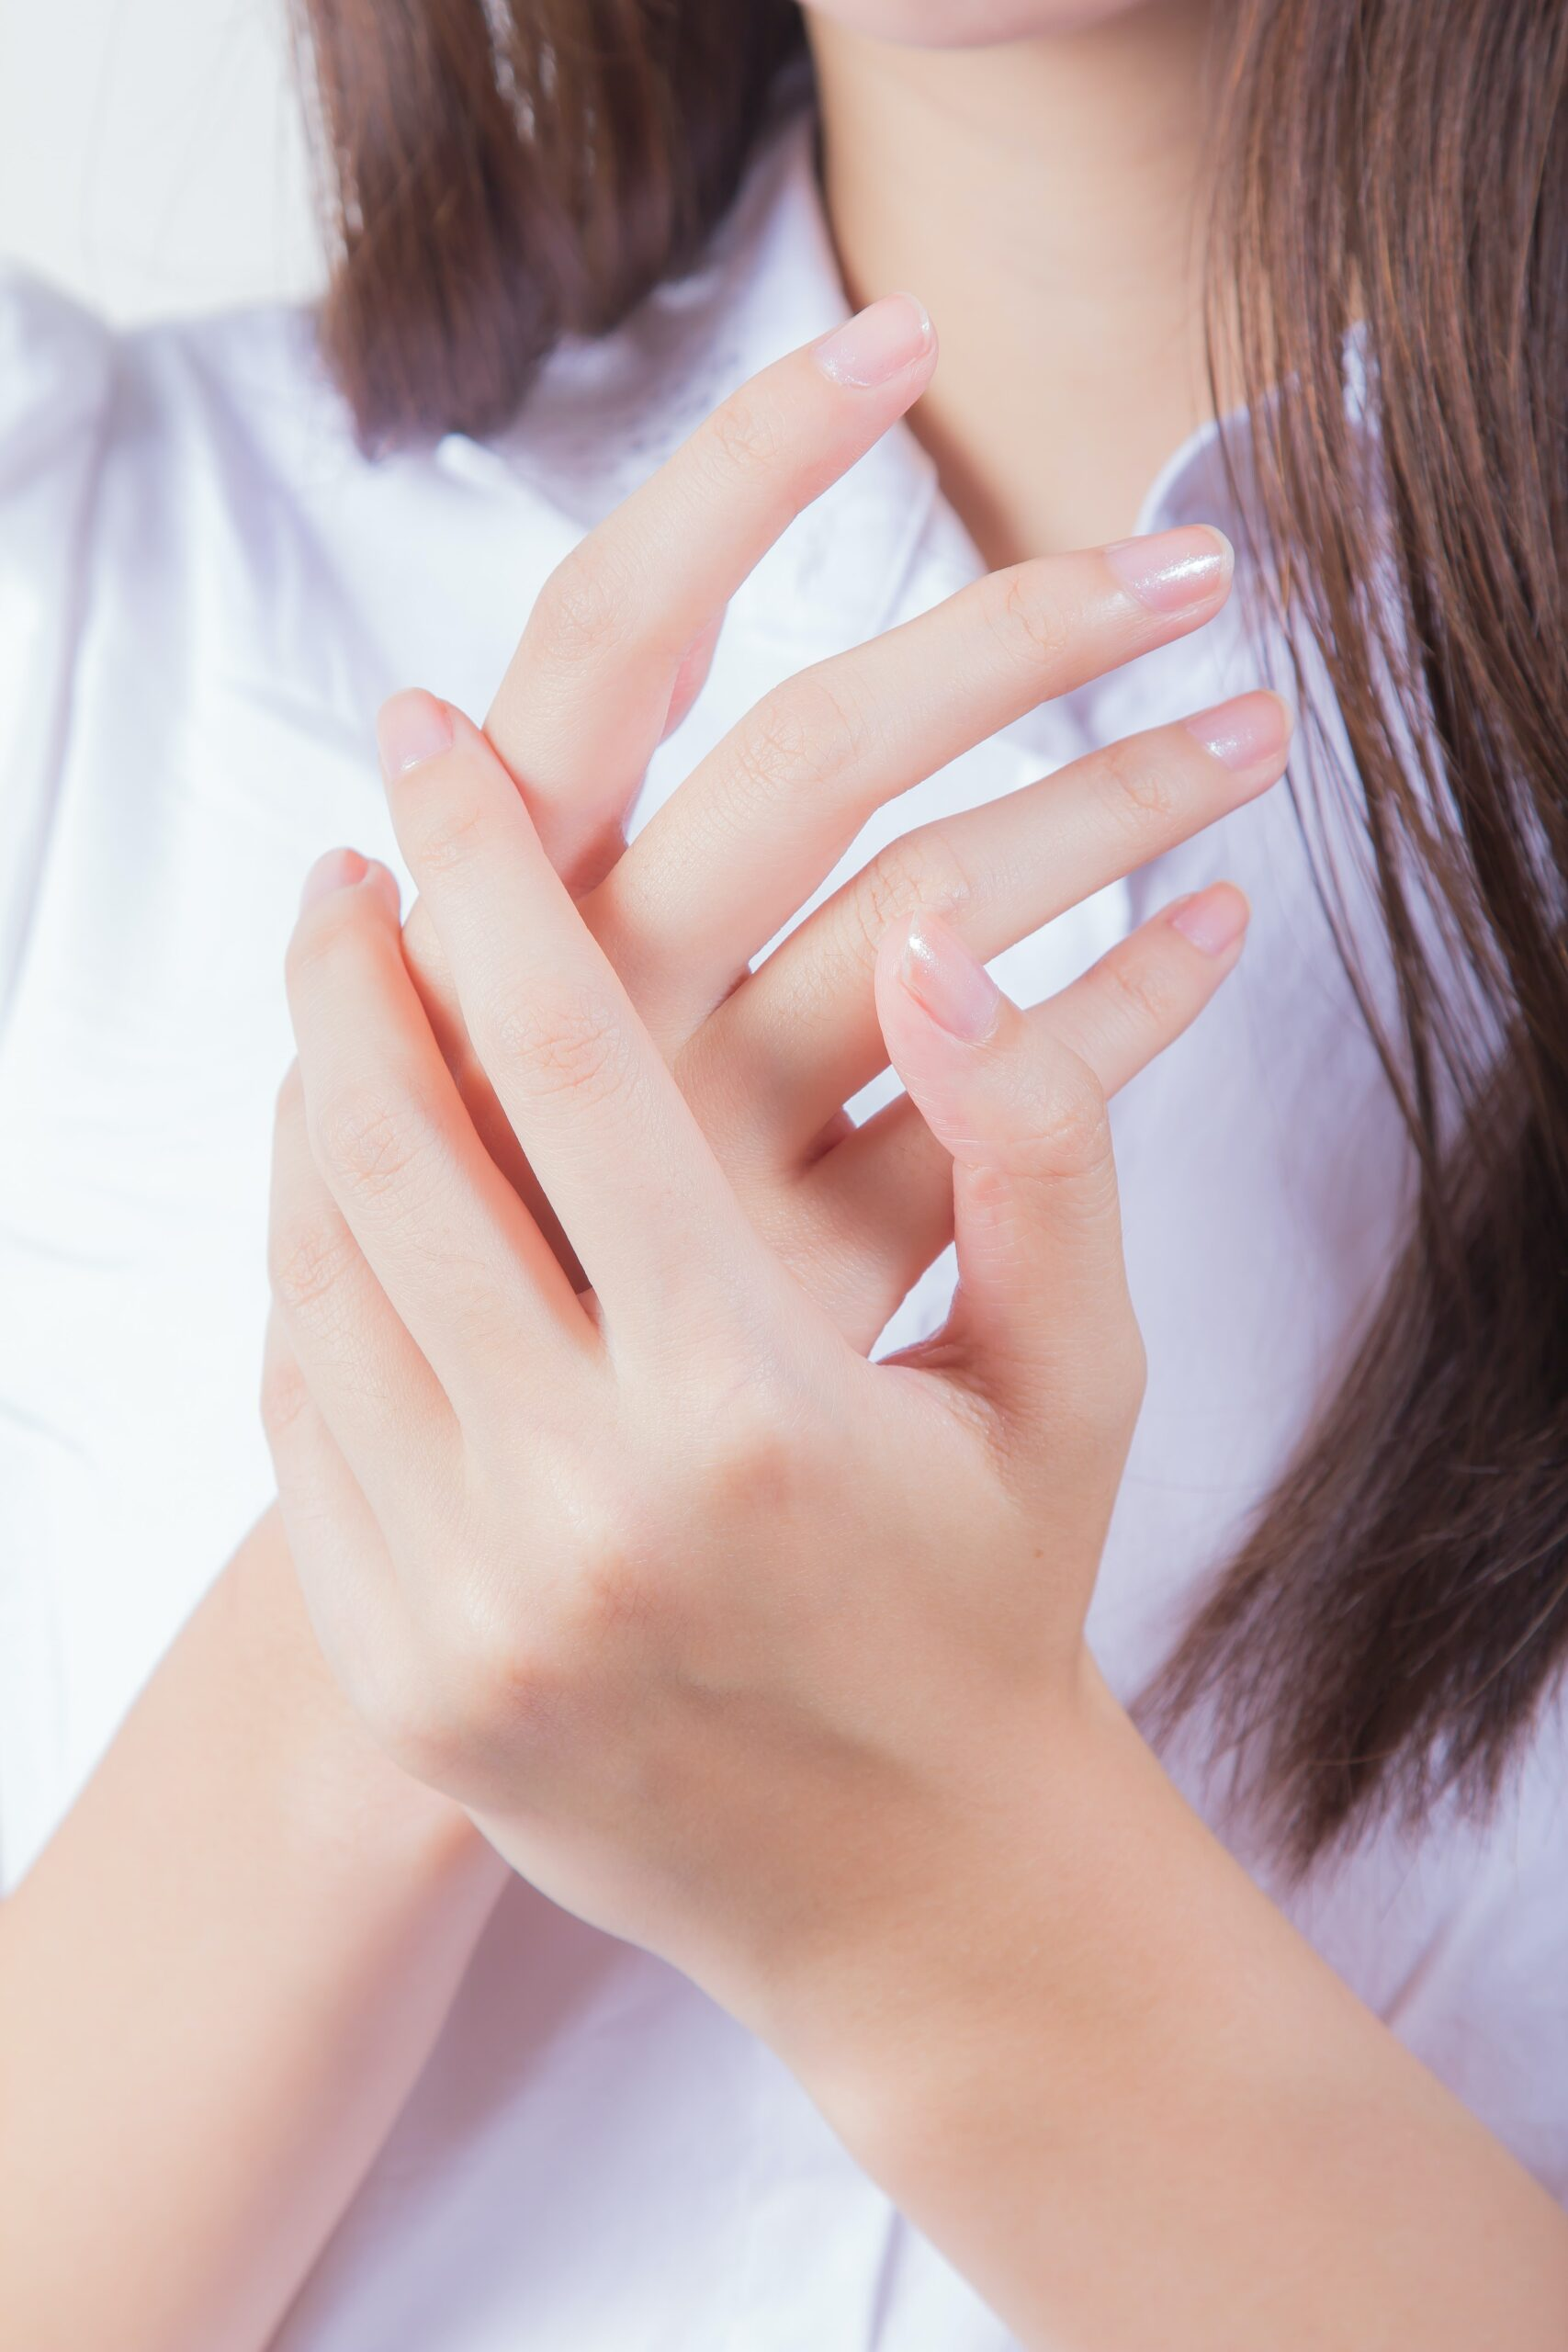 Best Supplements for Strong And Healthy Nails